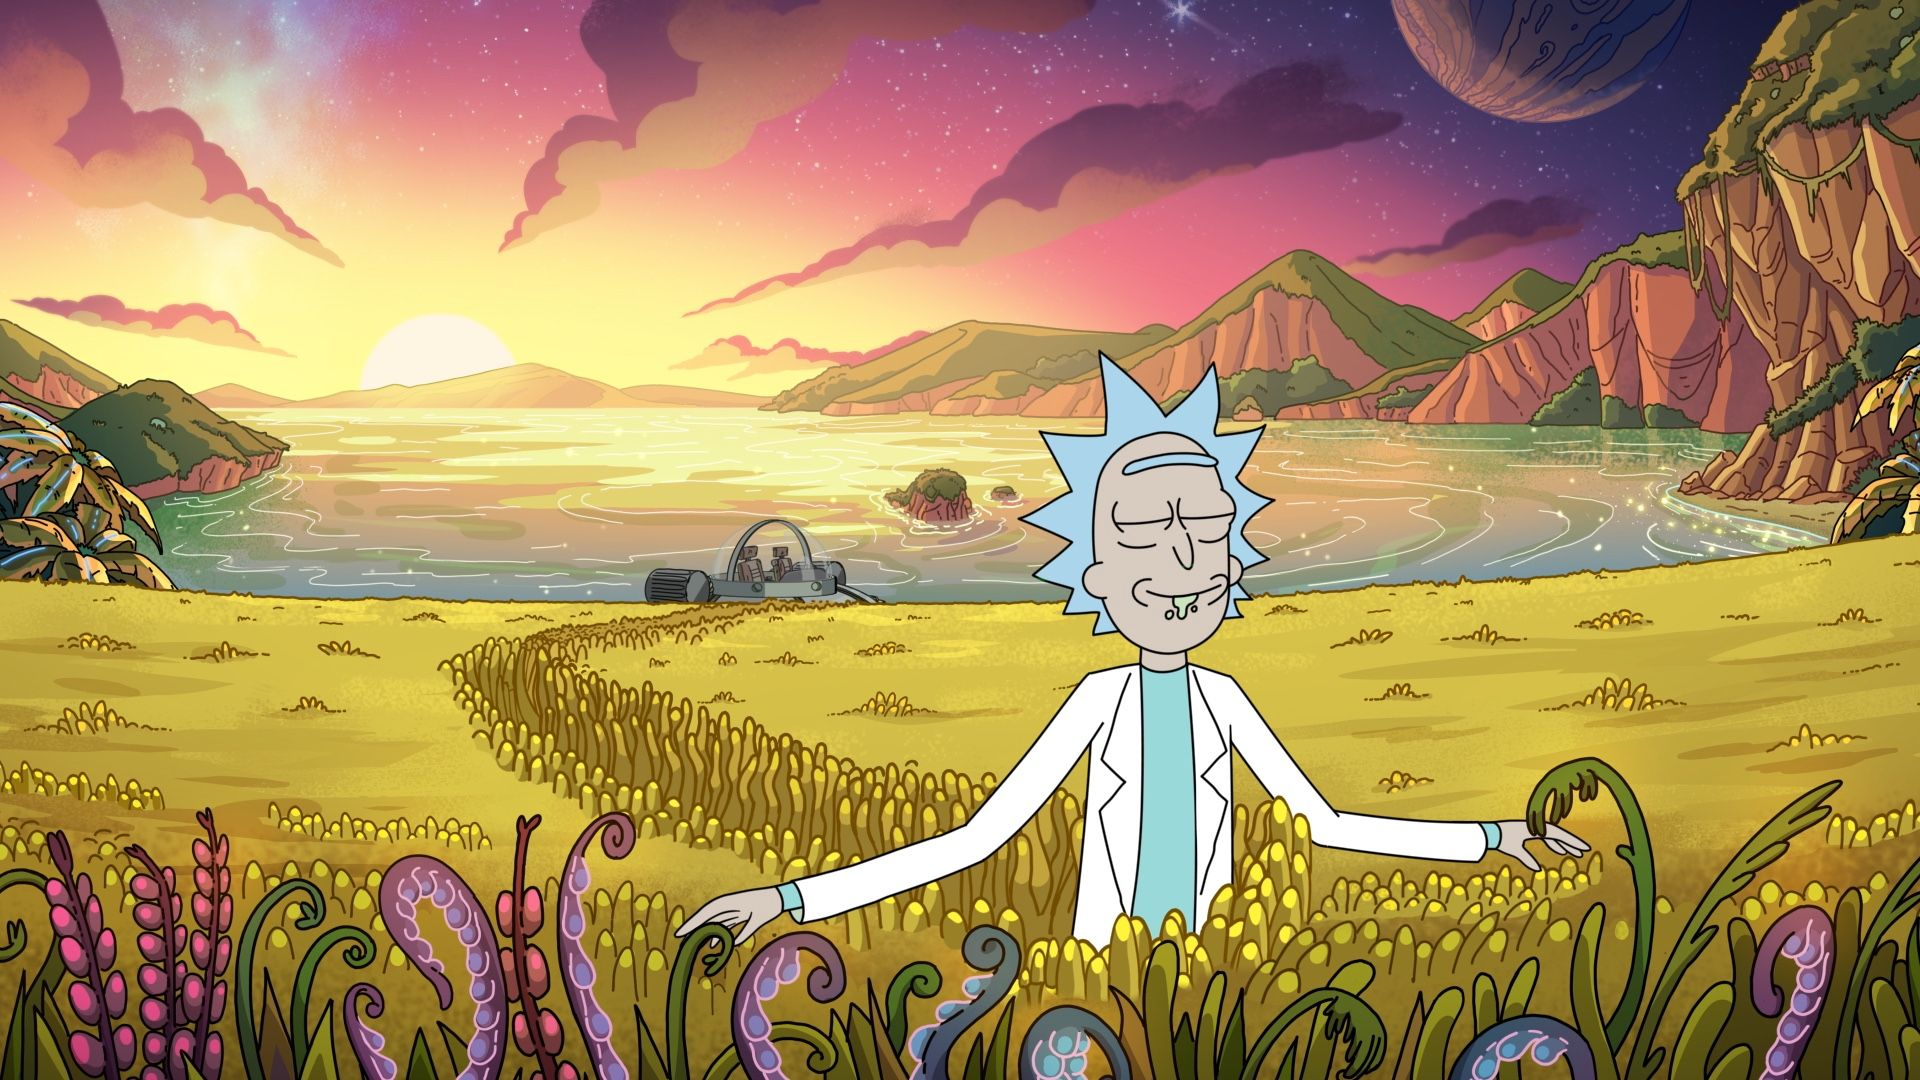 Rick And Morty Live Wallpaper Android In 2020 Rick And Morty Poster Rick And Morty Season Wallpaper Pc